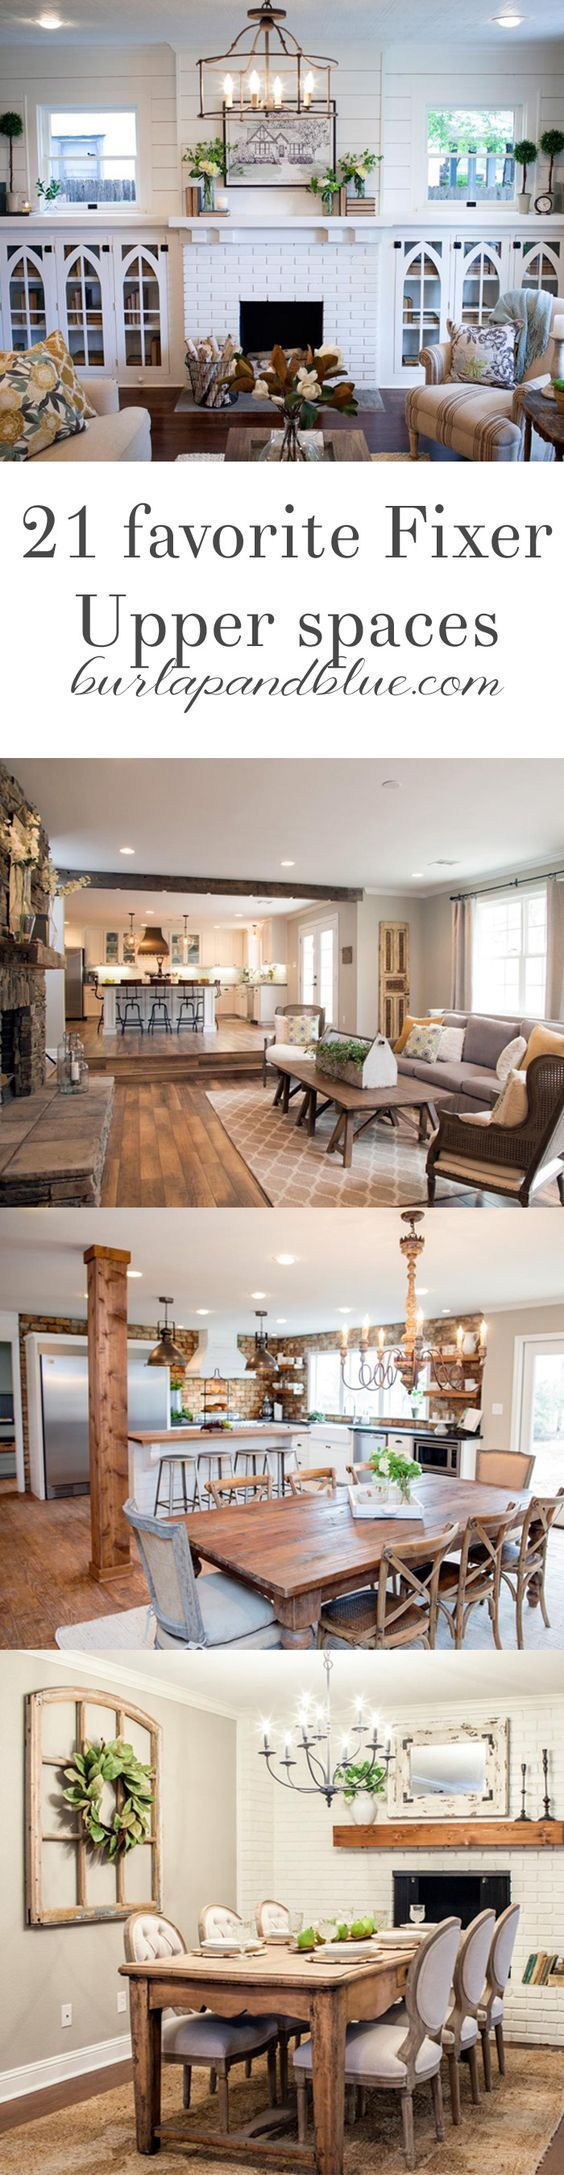 fixer upper kitchens  living and dining rooms  21 favorites. Best 25  Fixer upper hgtv ideas on Pinterest   Fixer upper show